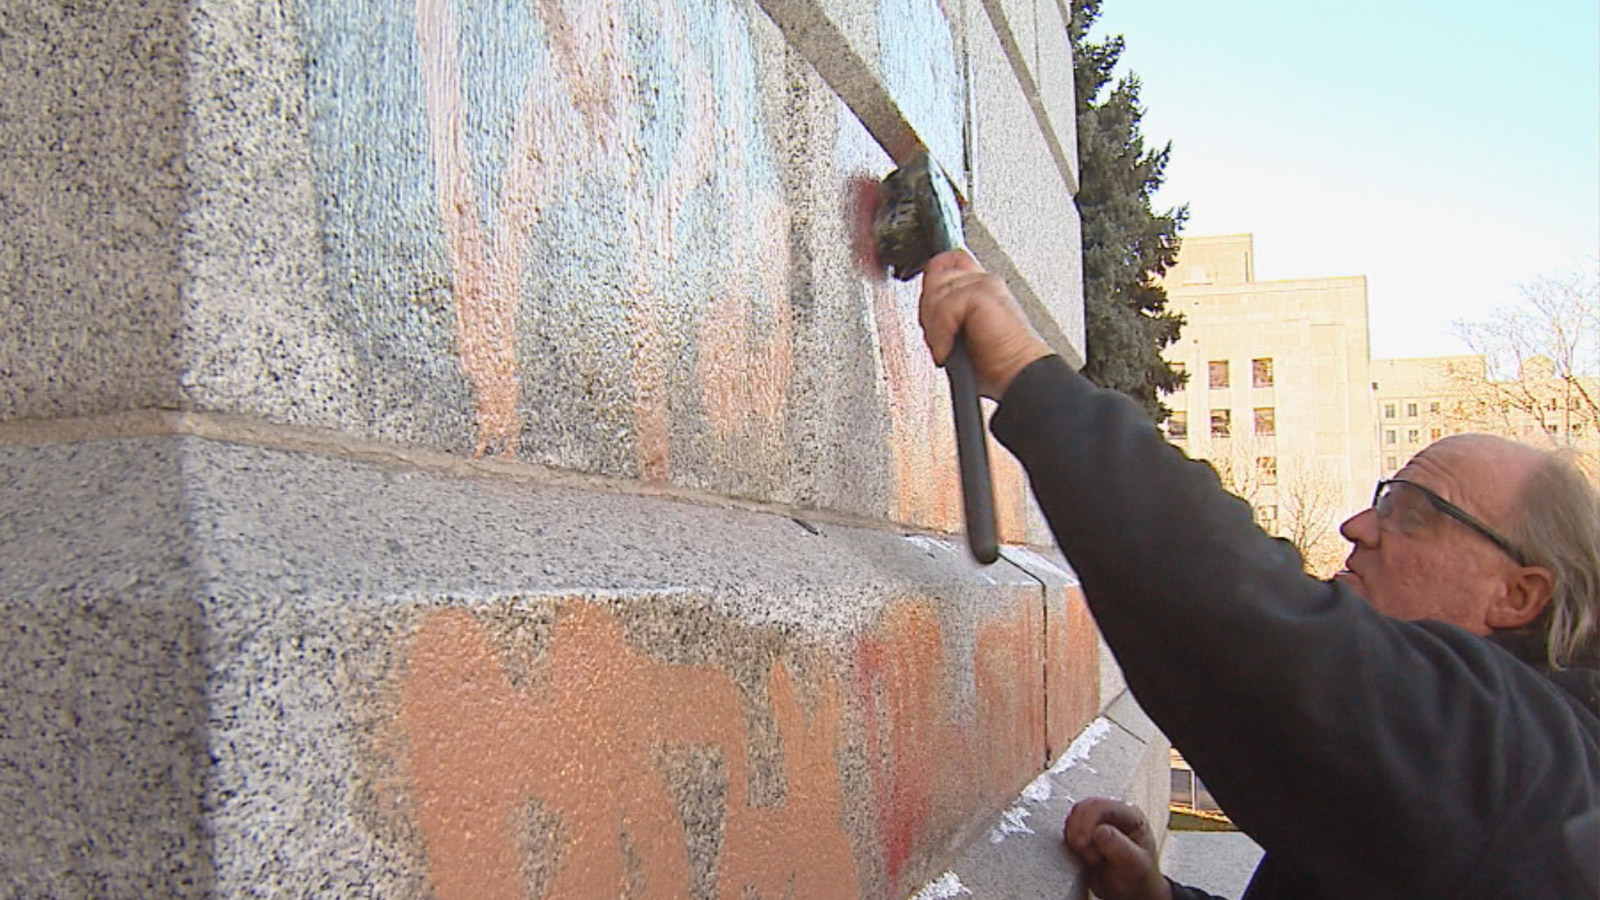 Crews cleaned graffiti off the state Capitol on Thursday (credit: CBS)